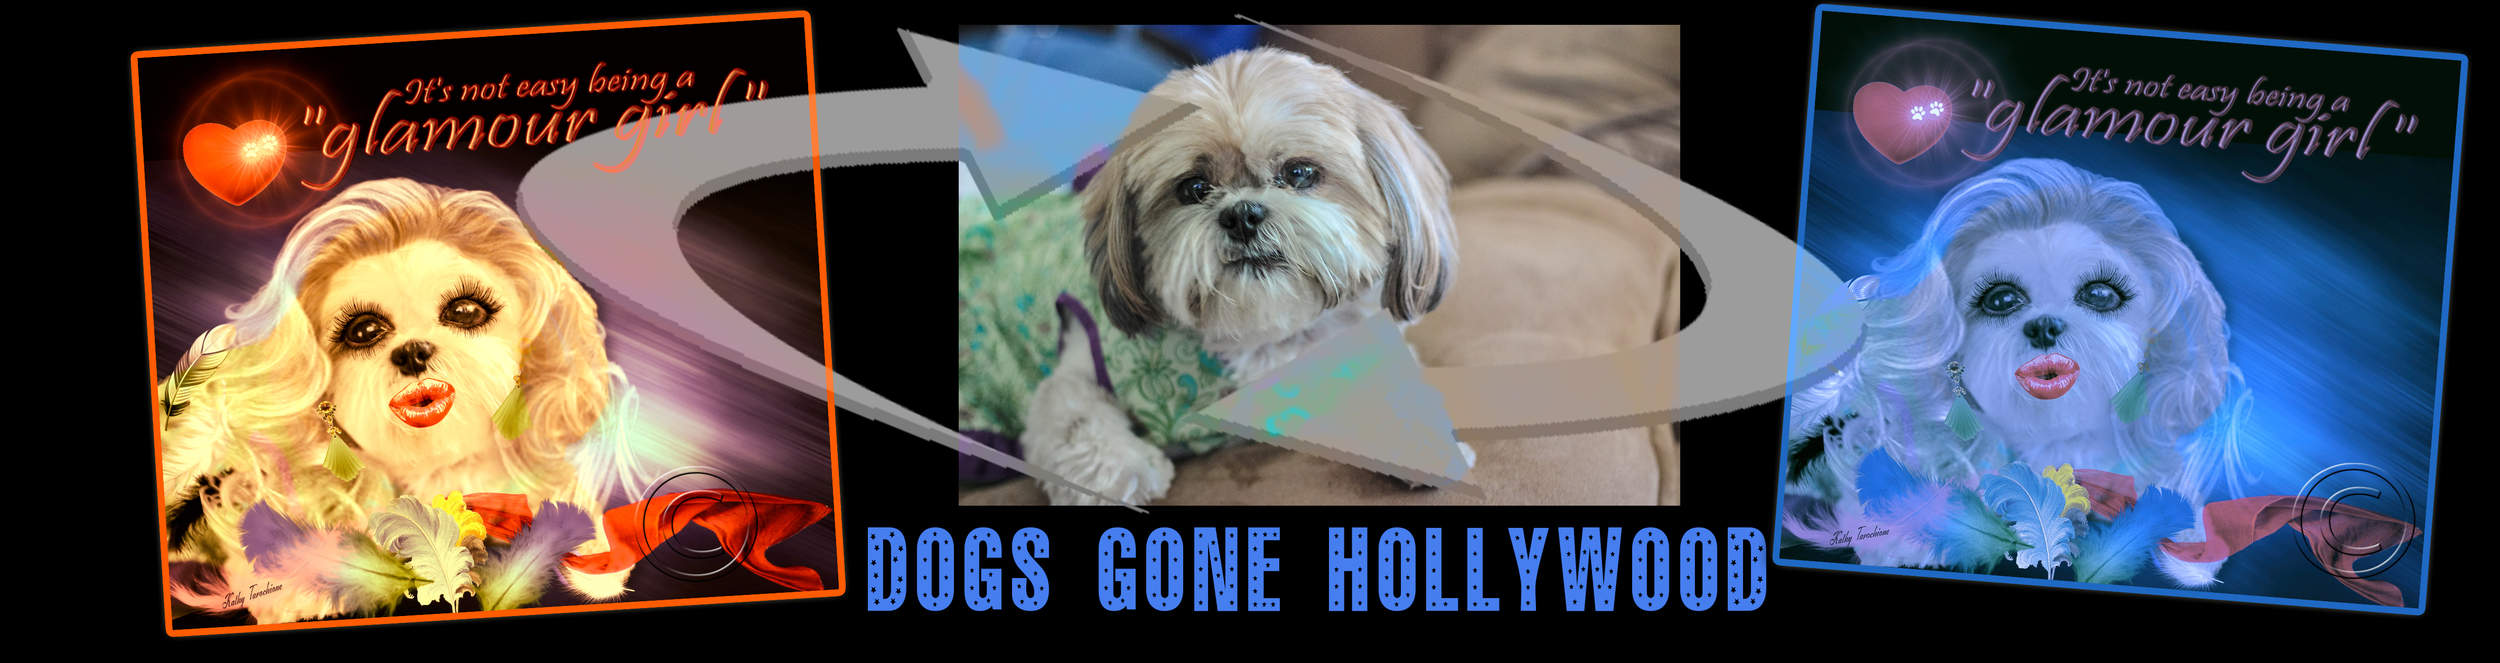 Check to see if your Dog could use a Hollywood Makeover and see if we can make your Pet into a Star!!!